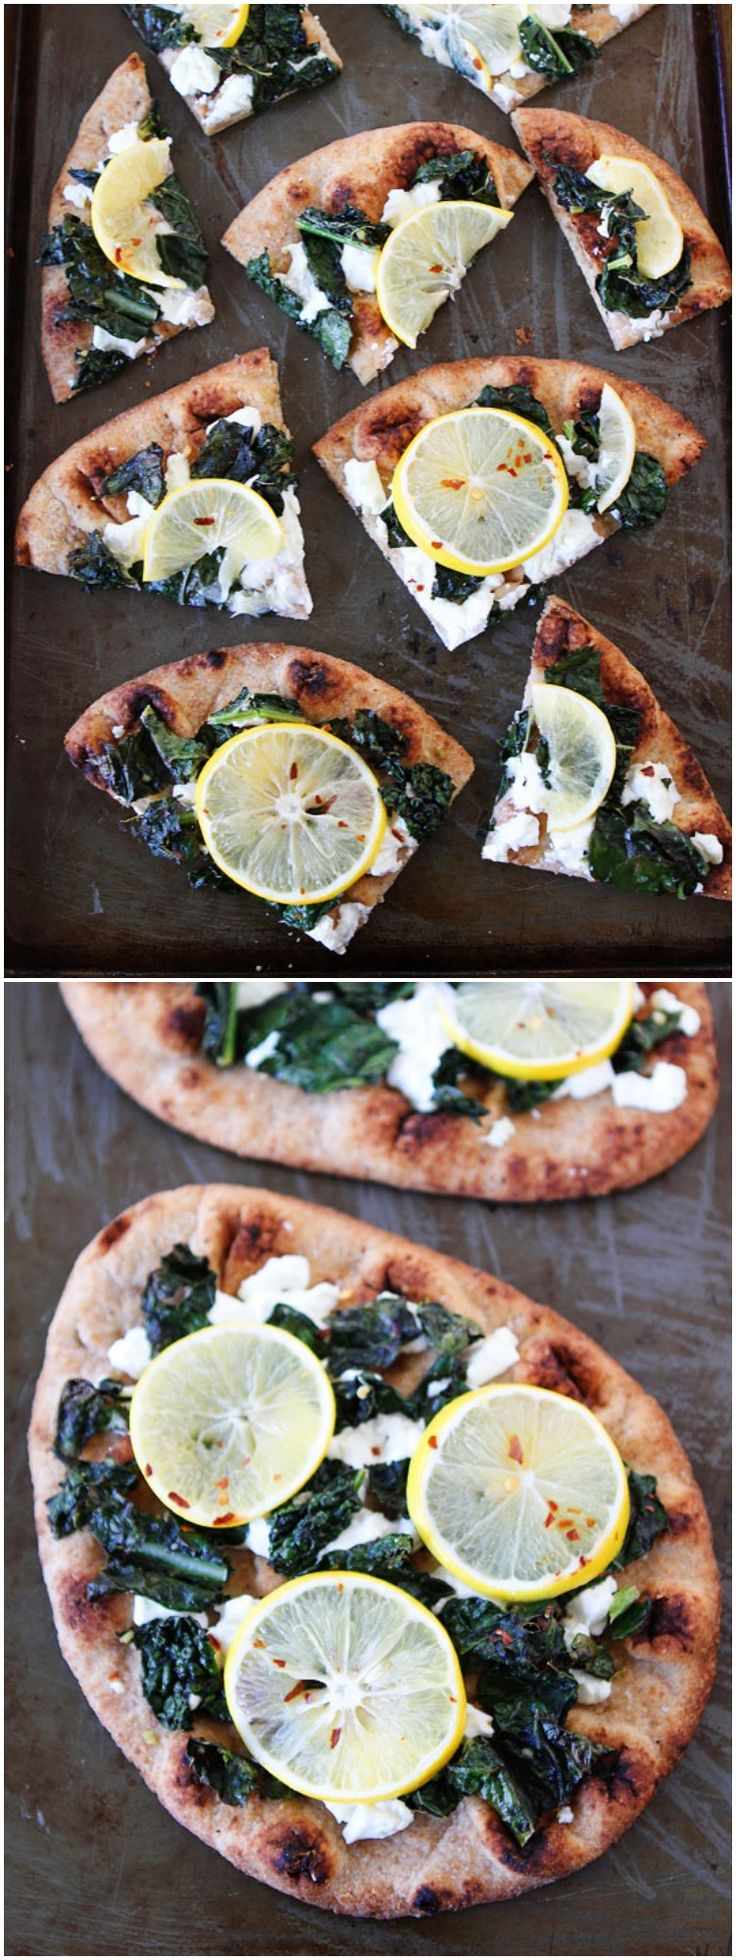 Meyer Lemon, Kale, and Goat Cheese Flatbread Recipe on twopeasandtheirpod.com Great for an easy dinner, lunch, or as a party appetizer!